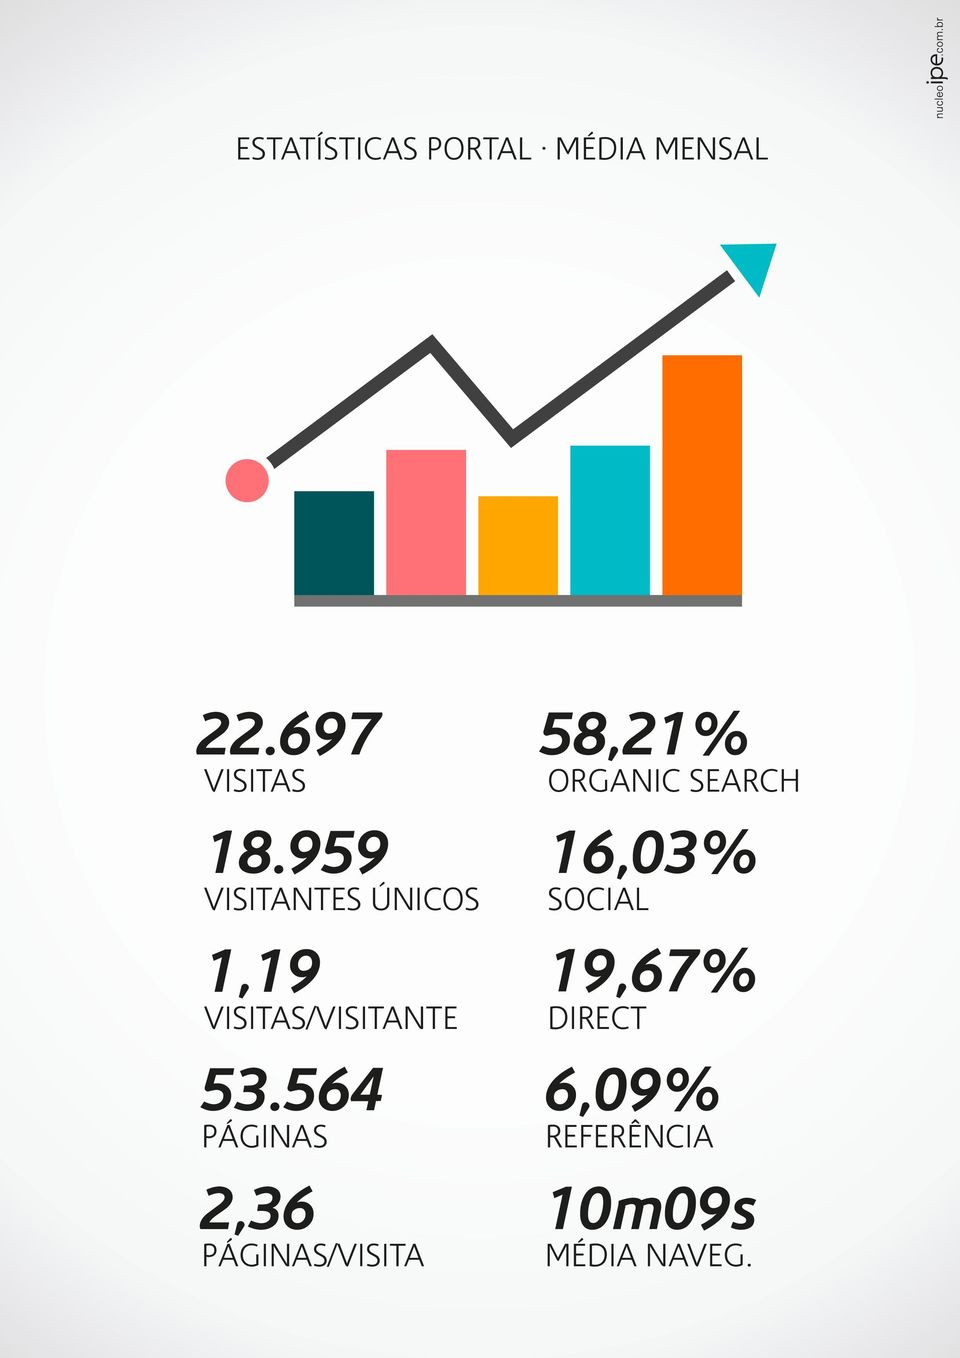 564 PÁGINAS 2,36 PÁGINAS/VISITA 58,21% ORGANIC SEARCH